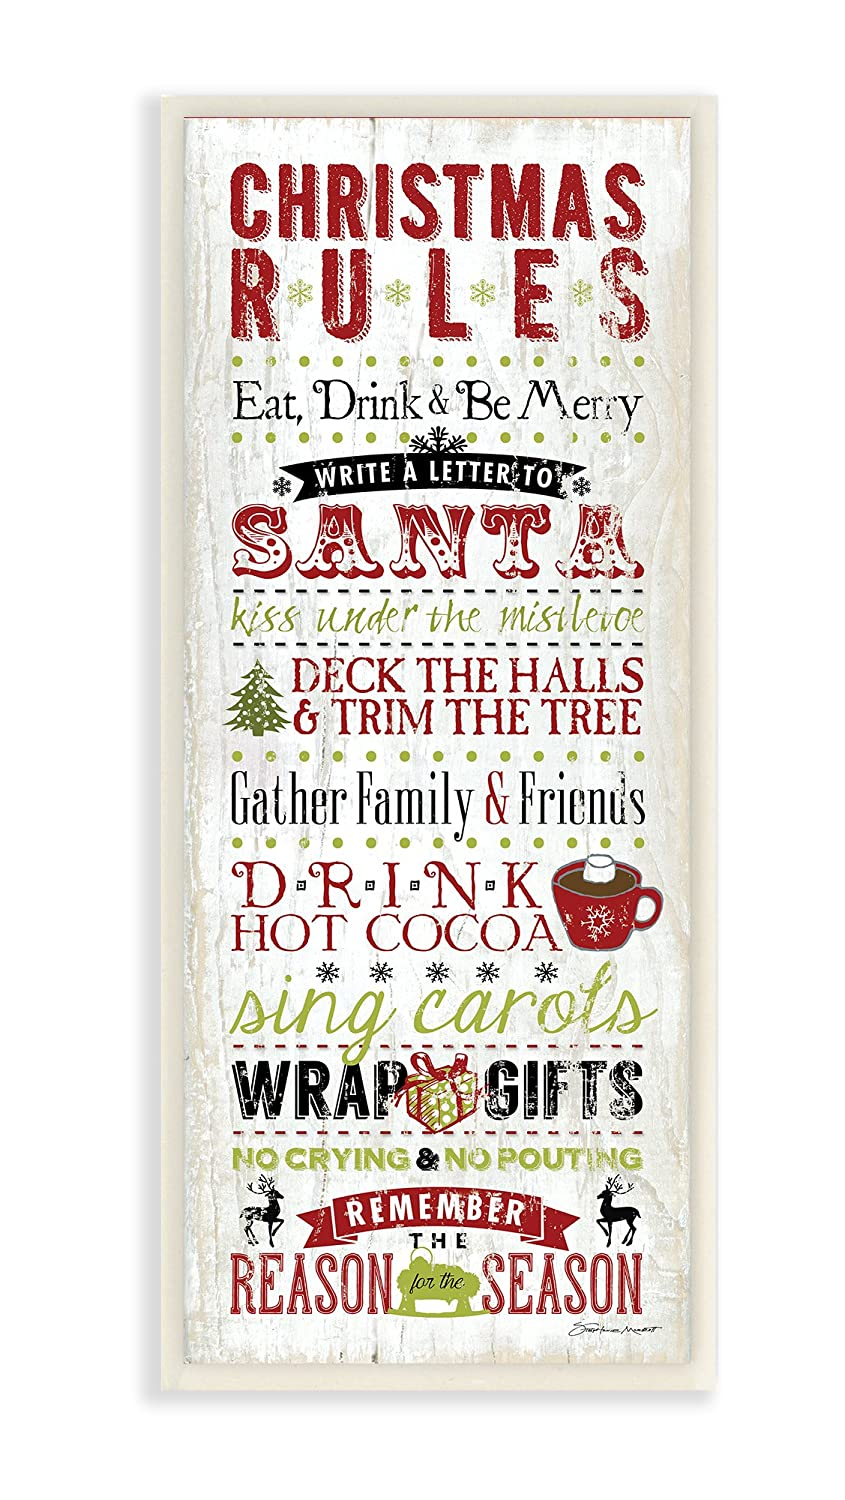 The Stupell Home Decor Collection Christmas Rules Typography Wall Plaque Art